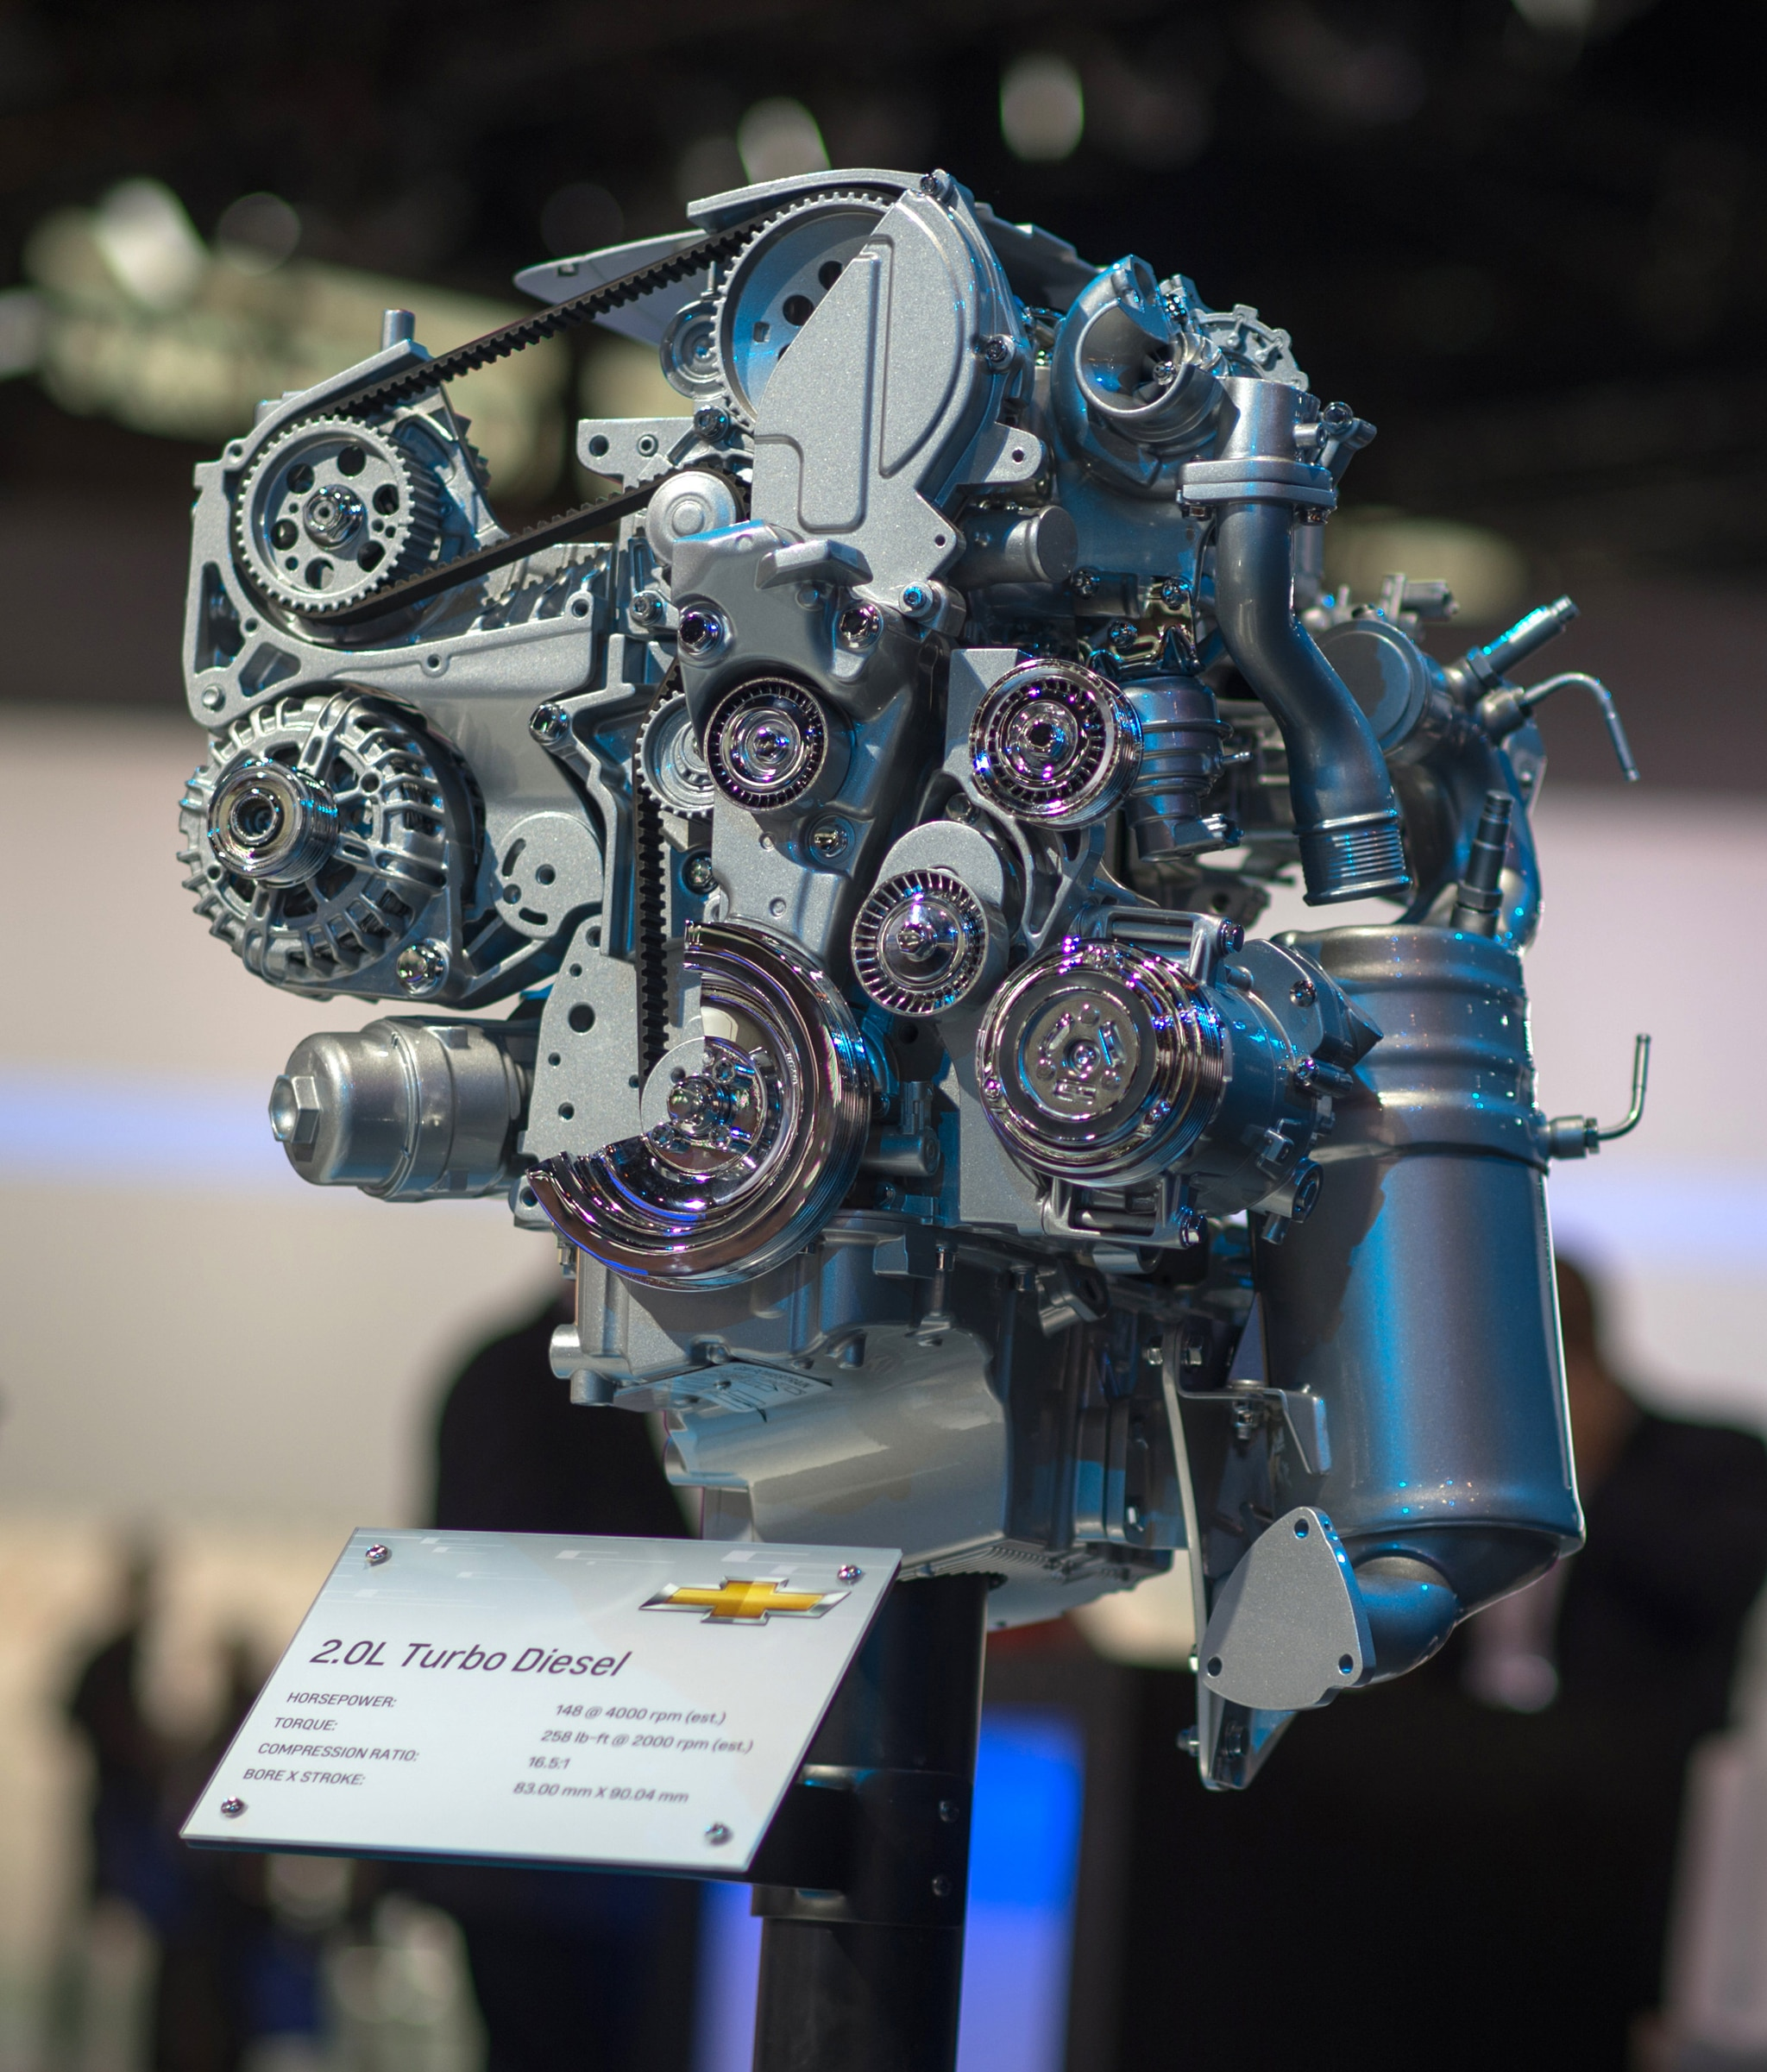 Gm Invests 50 Million In Lordstown Plant For Next Chevrolet Cruze Duramax Sel Engine 2014 Turbo Diesel